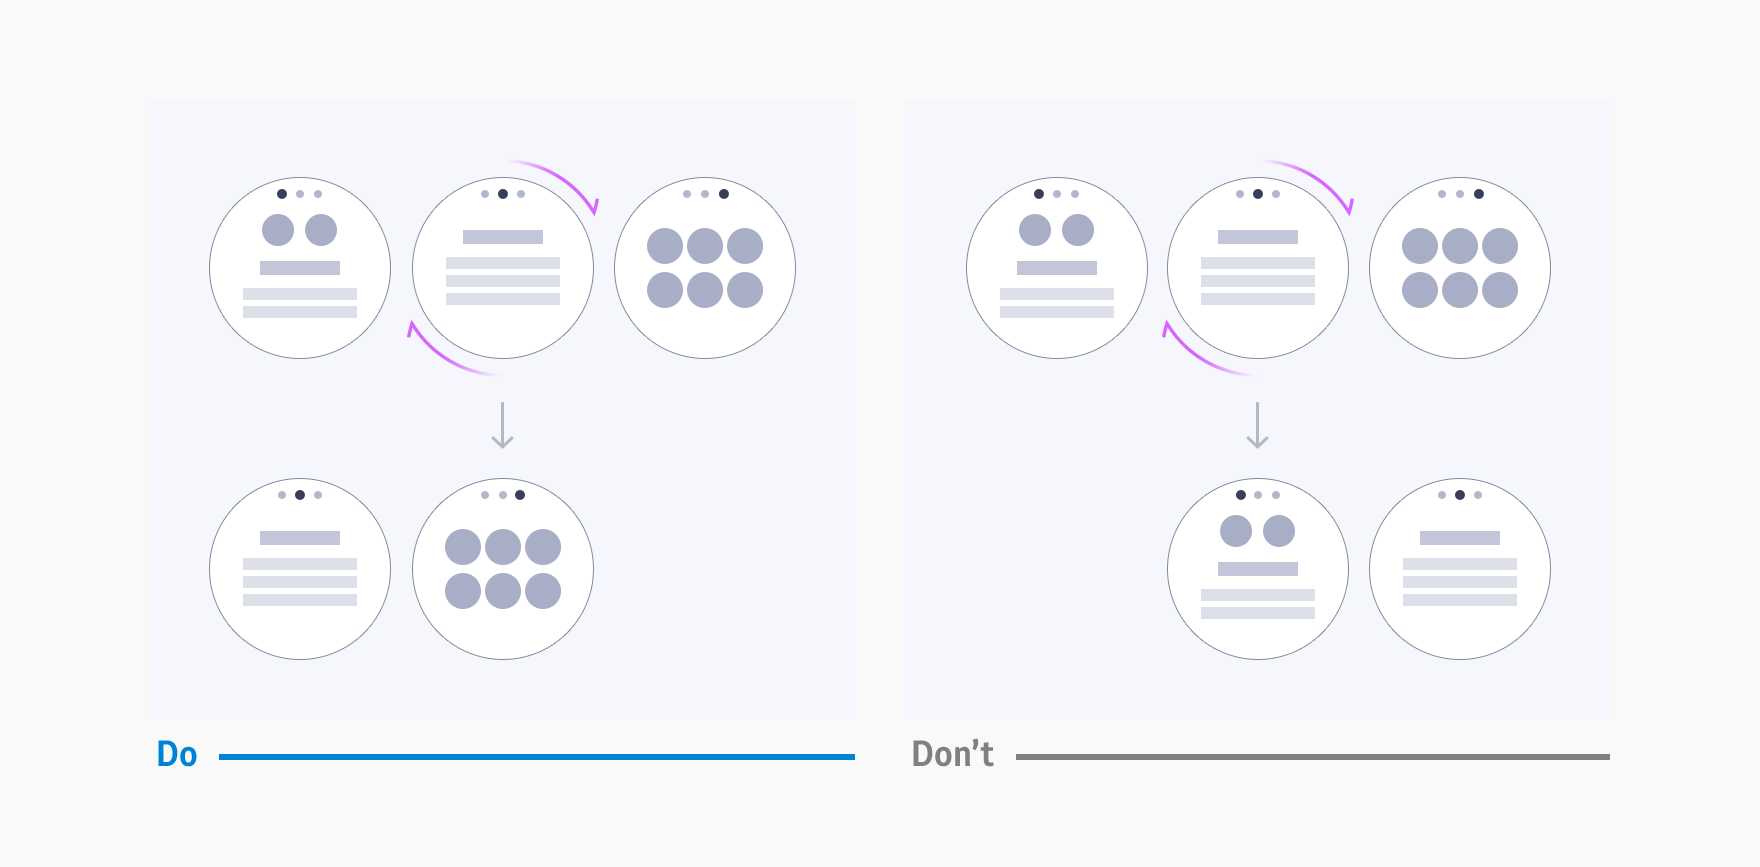 otating the bezel to the right takes users to the content on the right. Do not take them in the opposite direction.